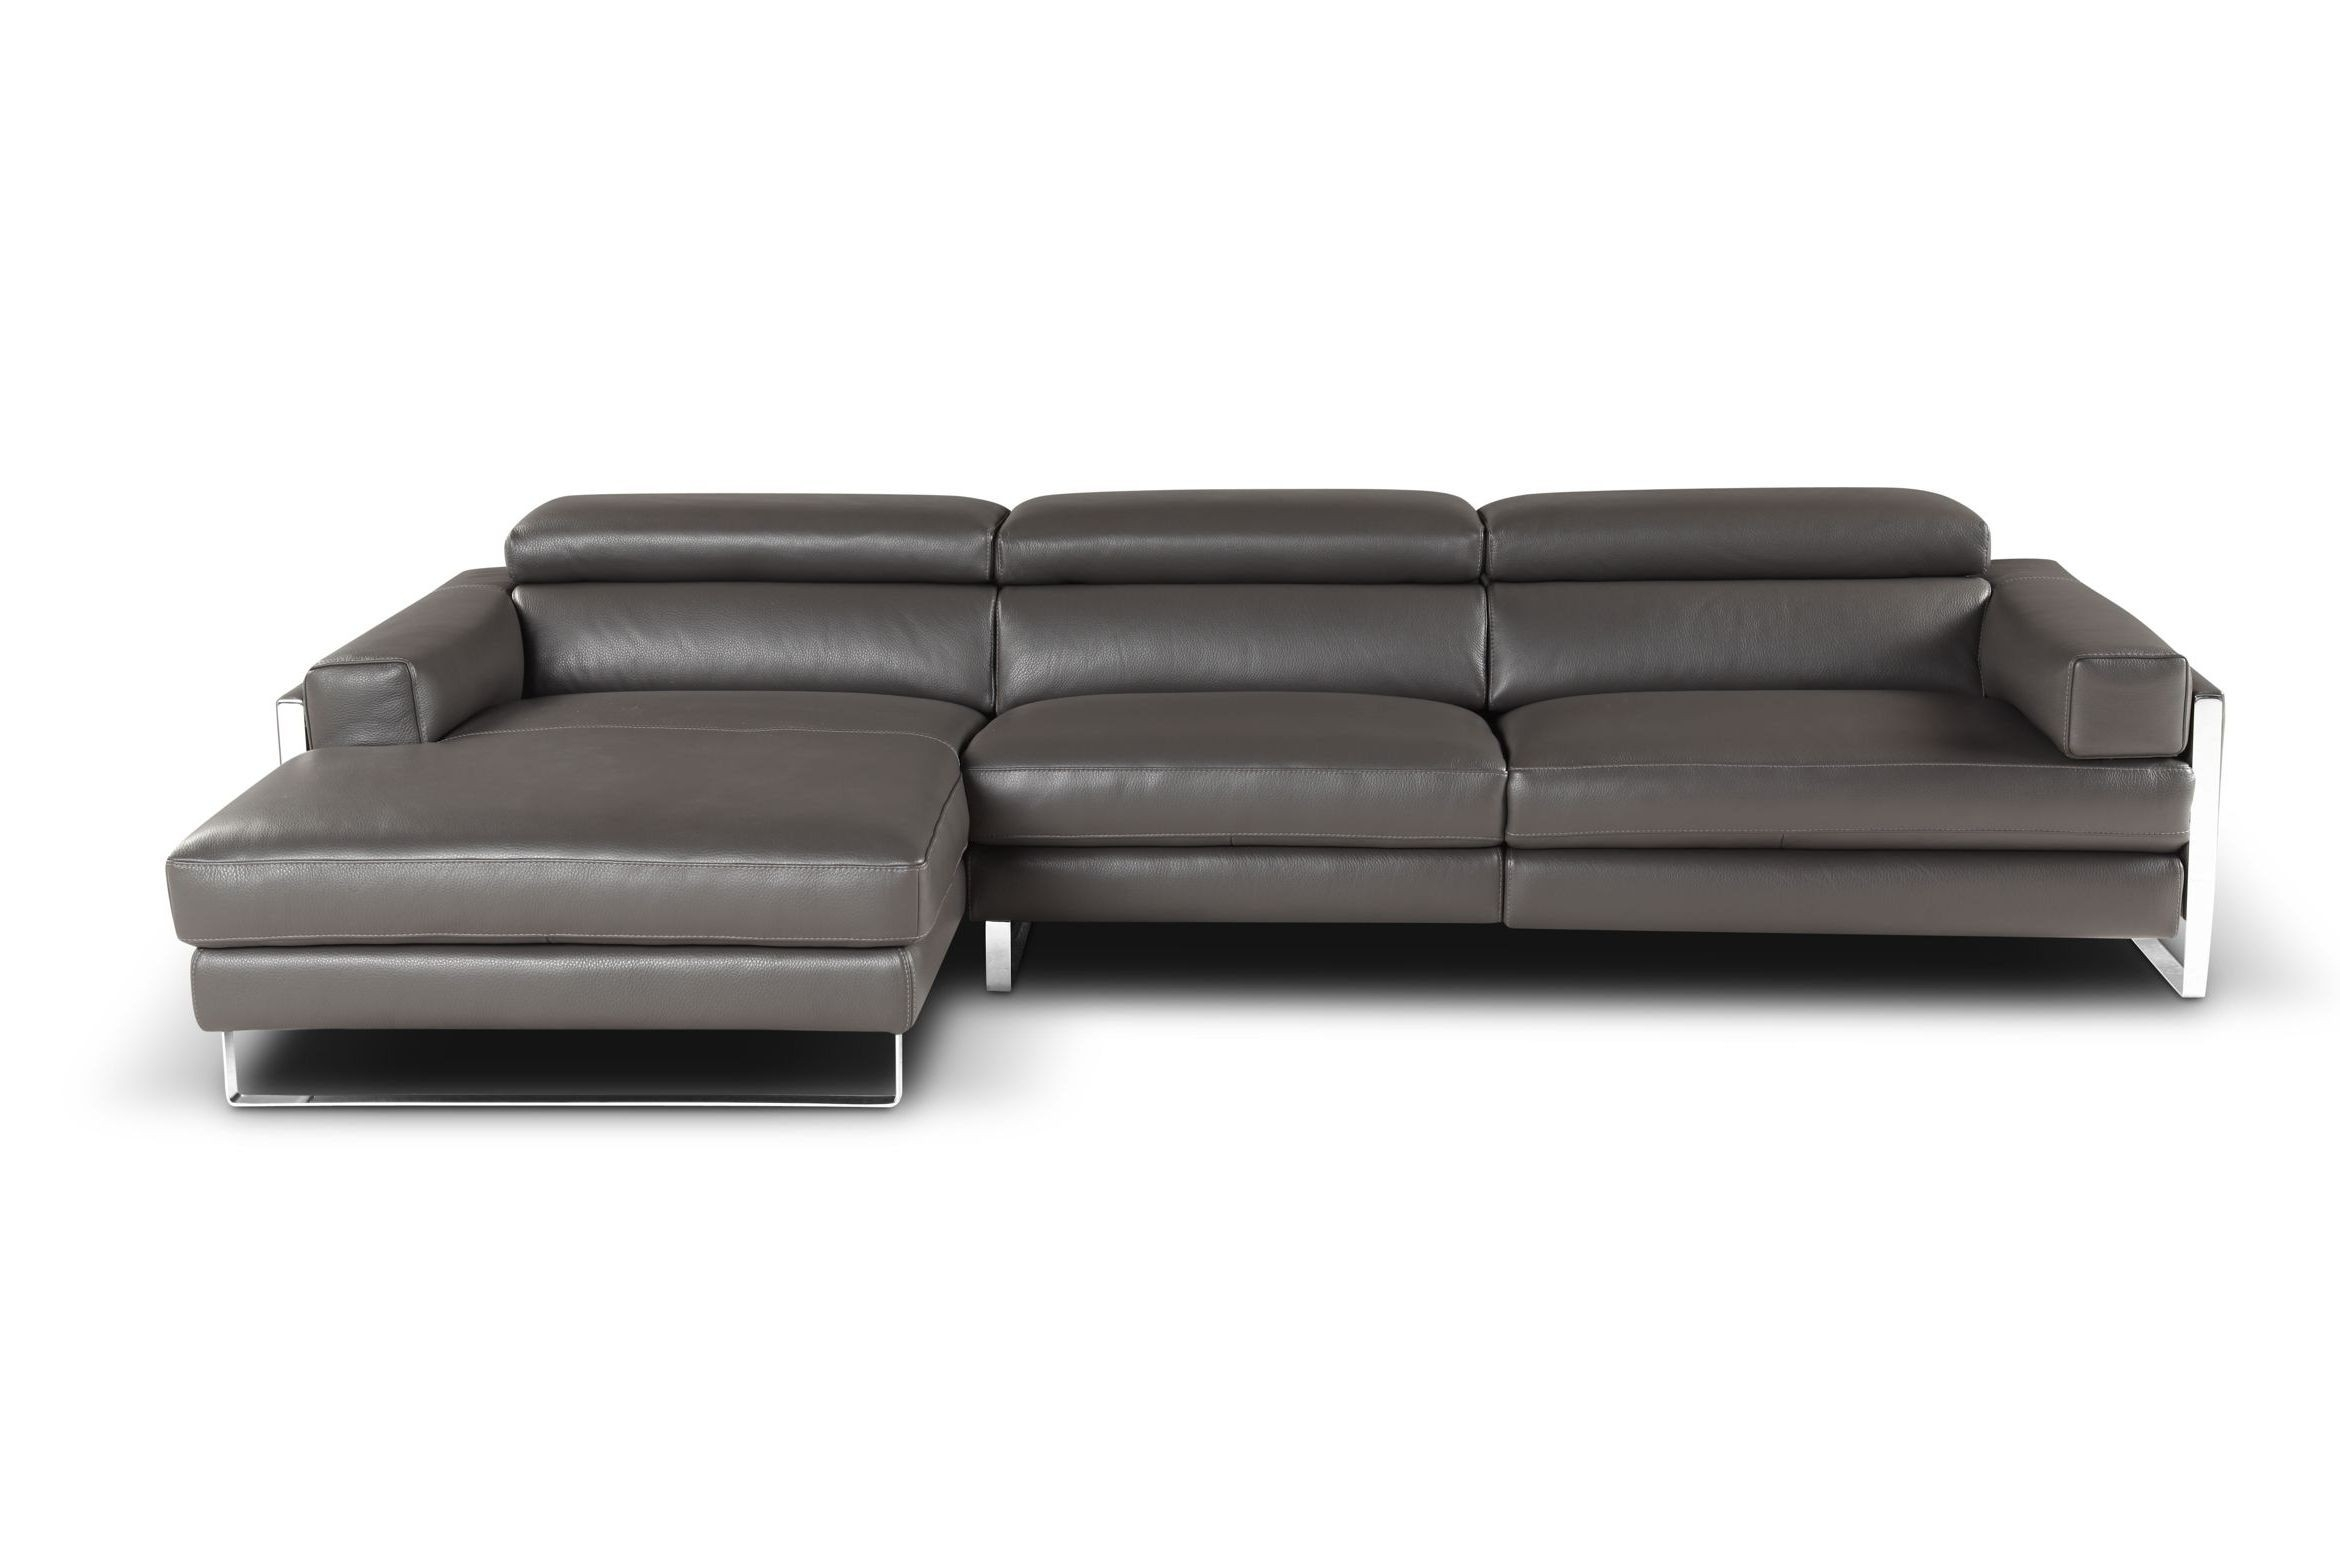 Left Facing Chaise Sectional | Zef Jam Inside Arrowmask 2 Piece Sectionals With Raf Chaise (Image 11 of 25)